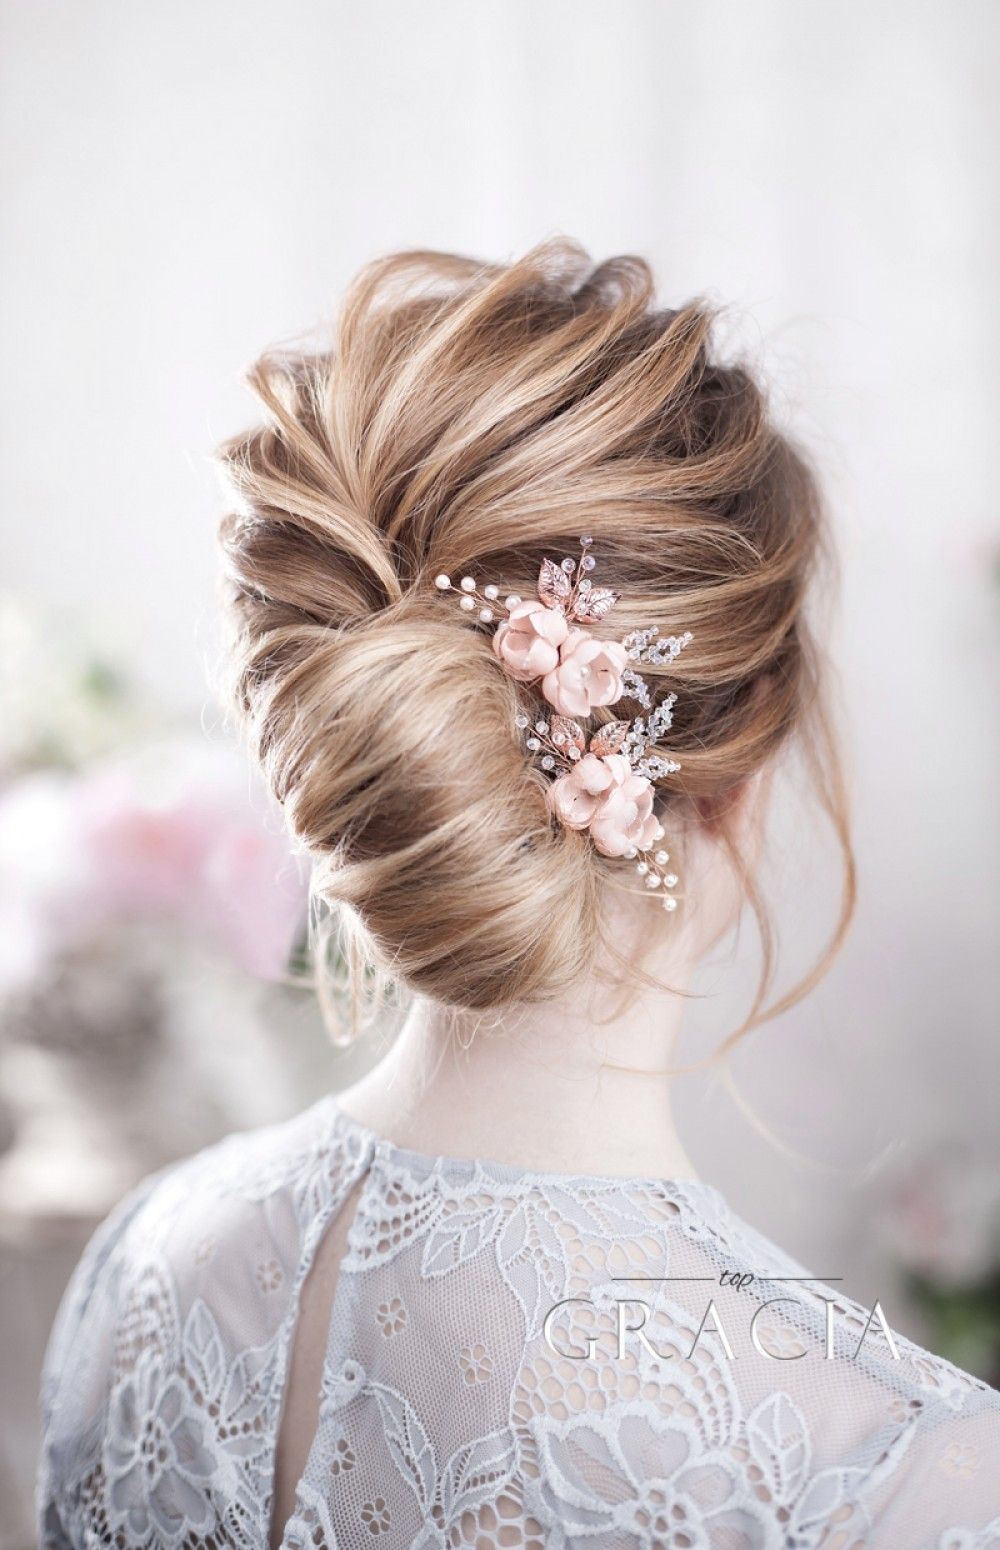 Blush Wedding Hairpins For Romantic Brides By Topgracia Floral